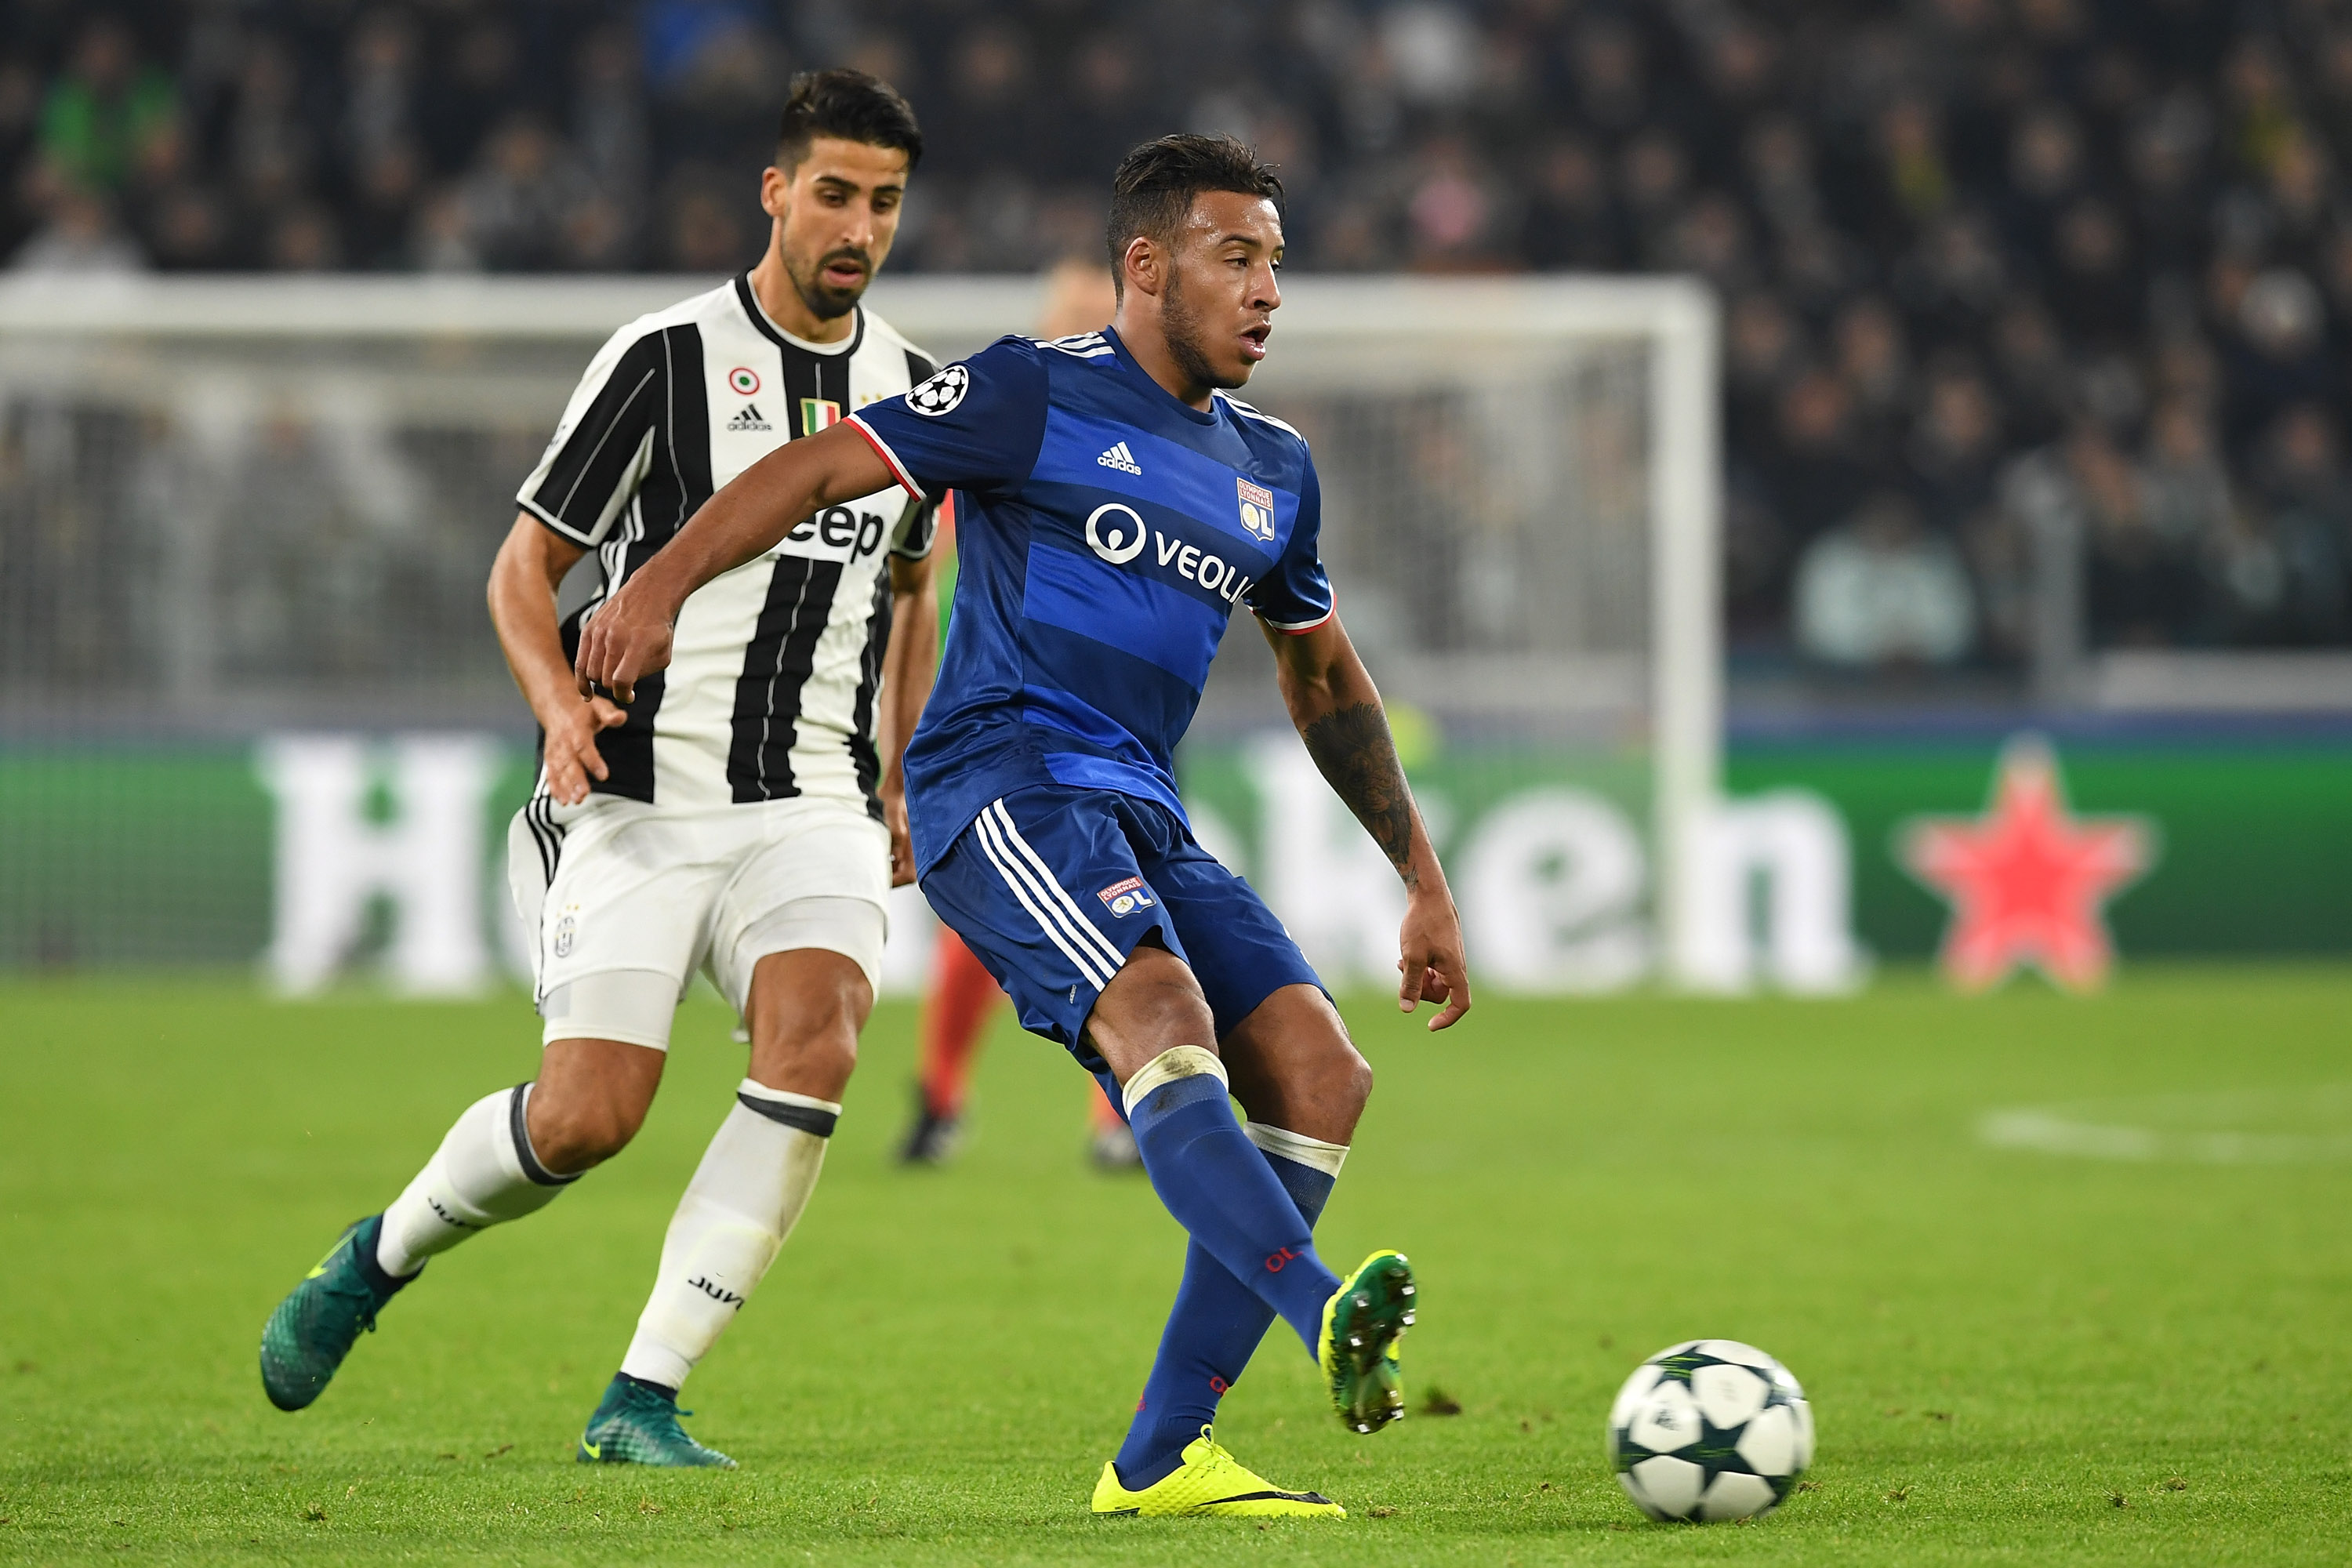 Examining how Corentin Tolisso will fit in at Bayern Munich